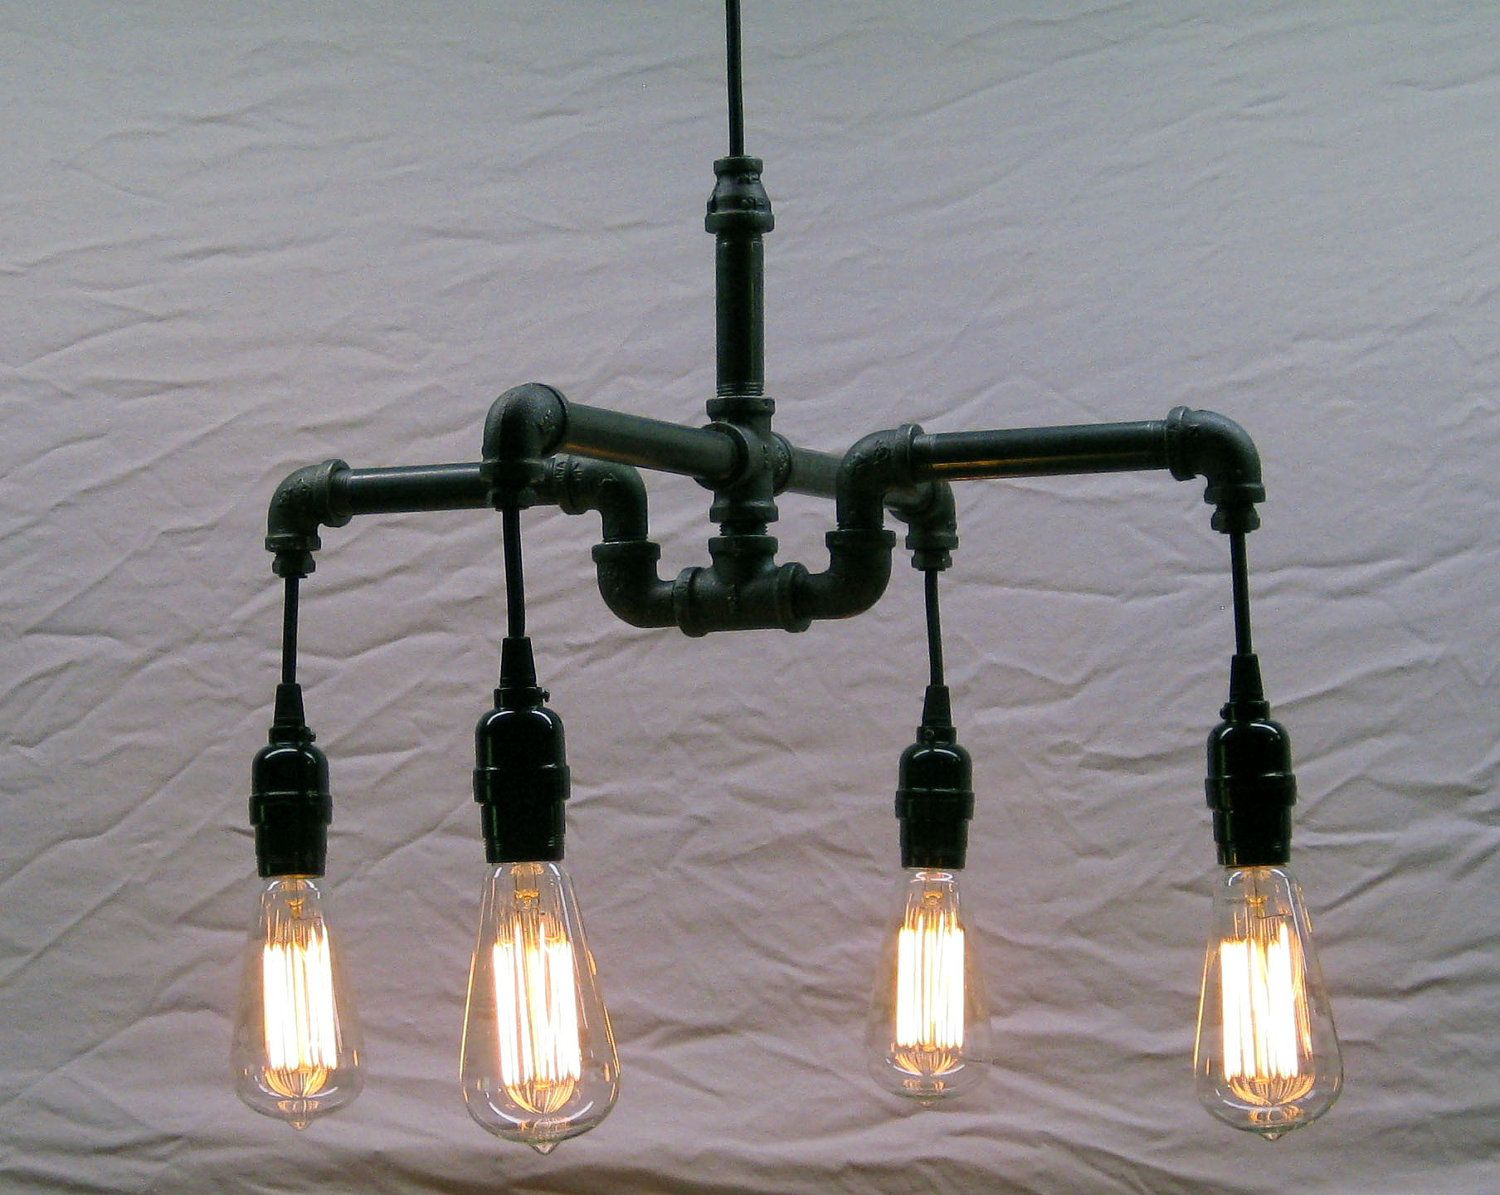 Iron Pipe Light Fixture Industrial Steampunk Black Malleable Iron 4 Bulb